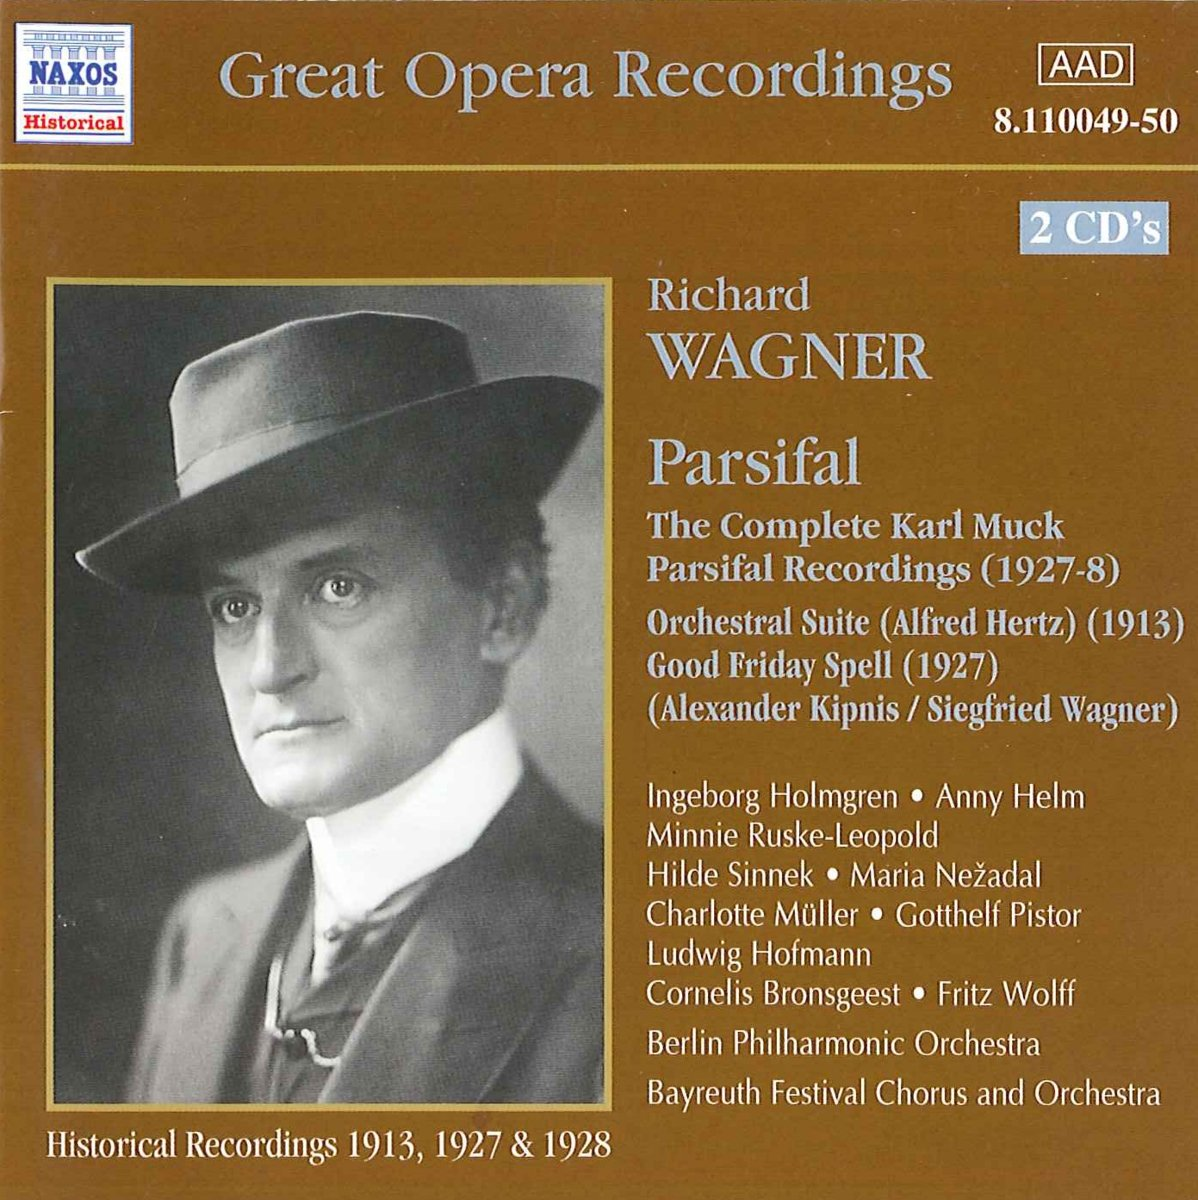 Wagner: The Complete Karl Muck Parsifal Recordings, Orchestral Suite, etc / Muck by Naxos